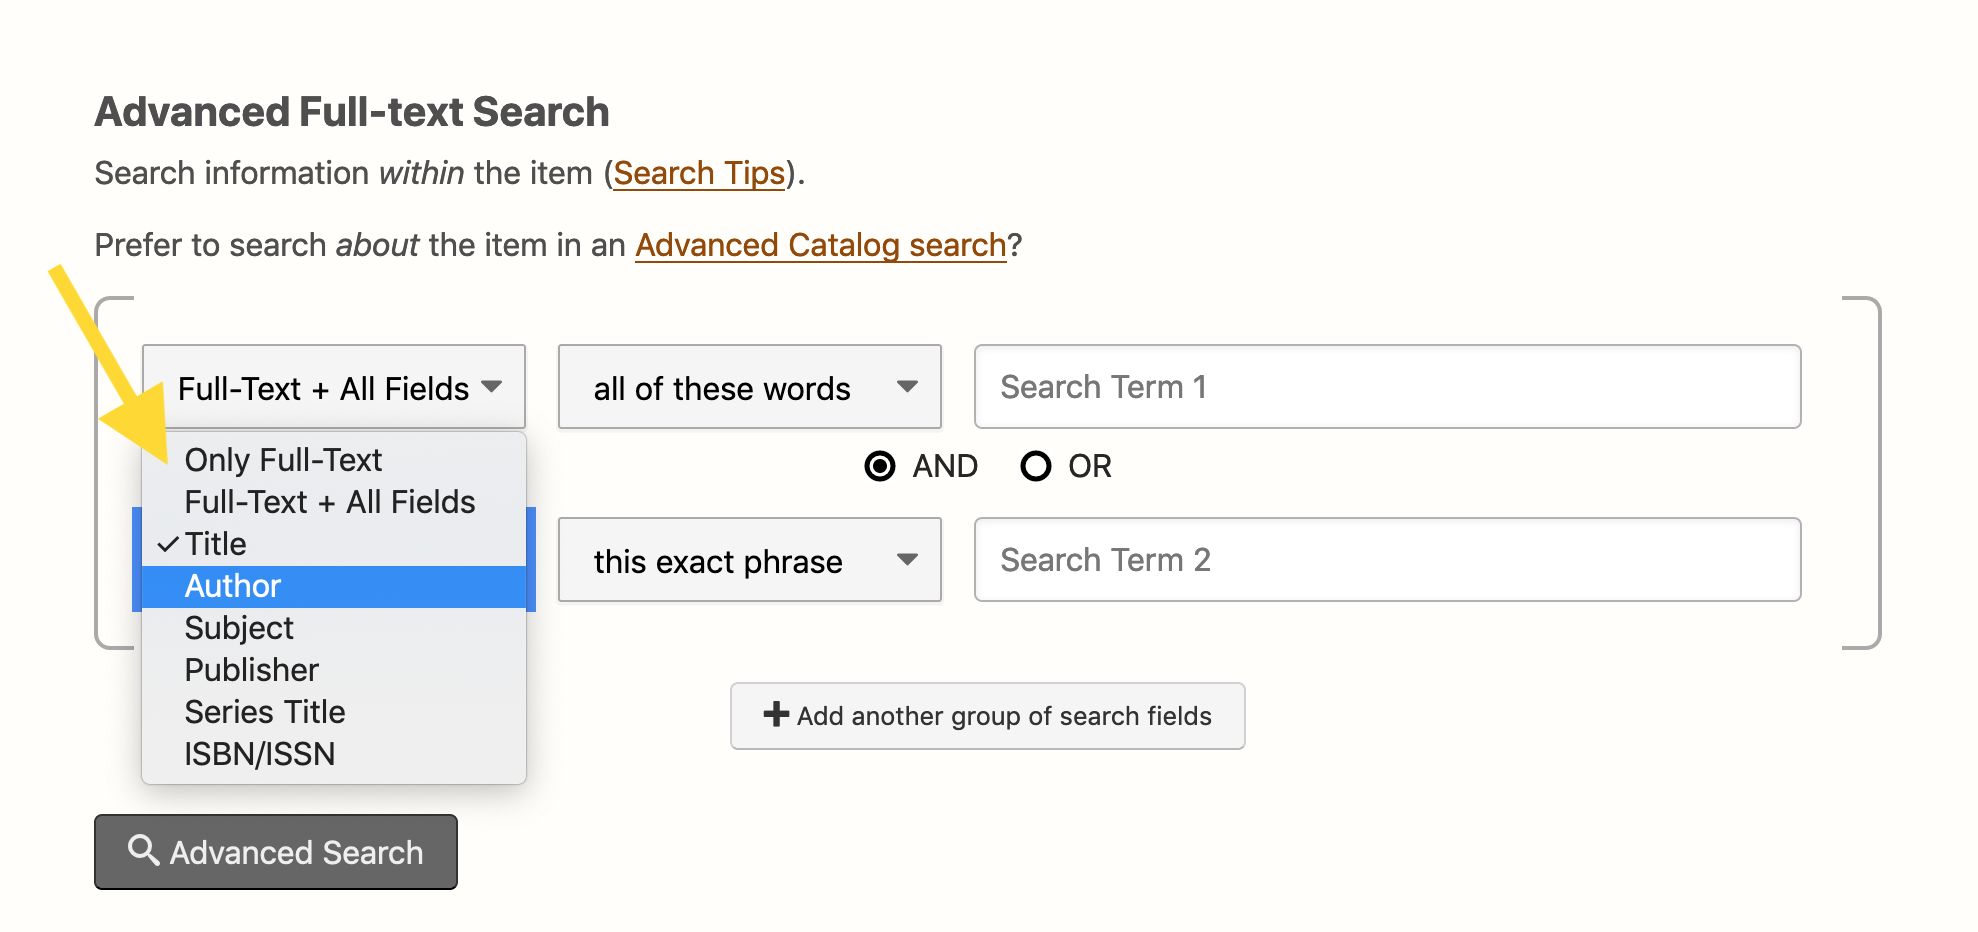 Hathi Trust Advanced Full-text Search